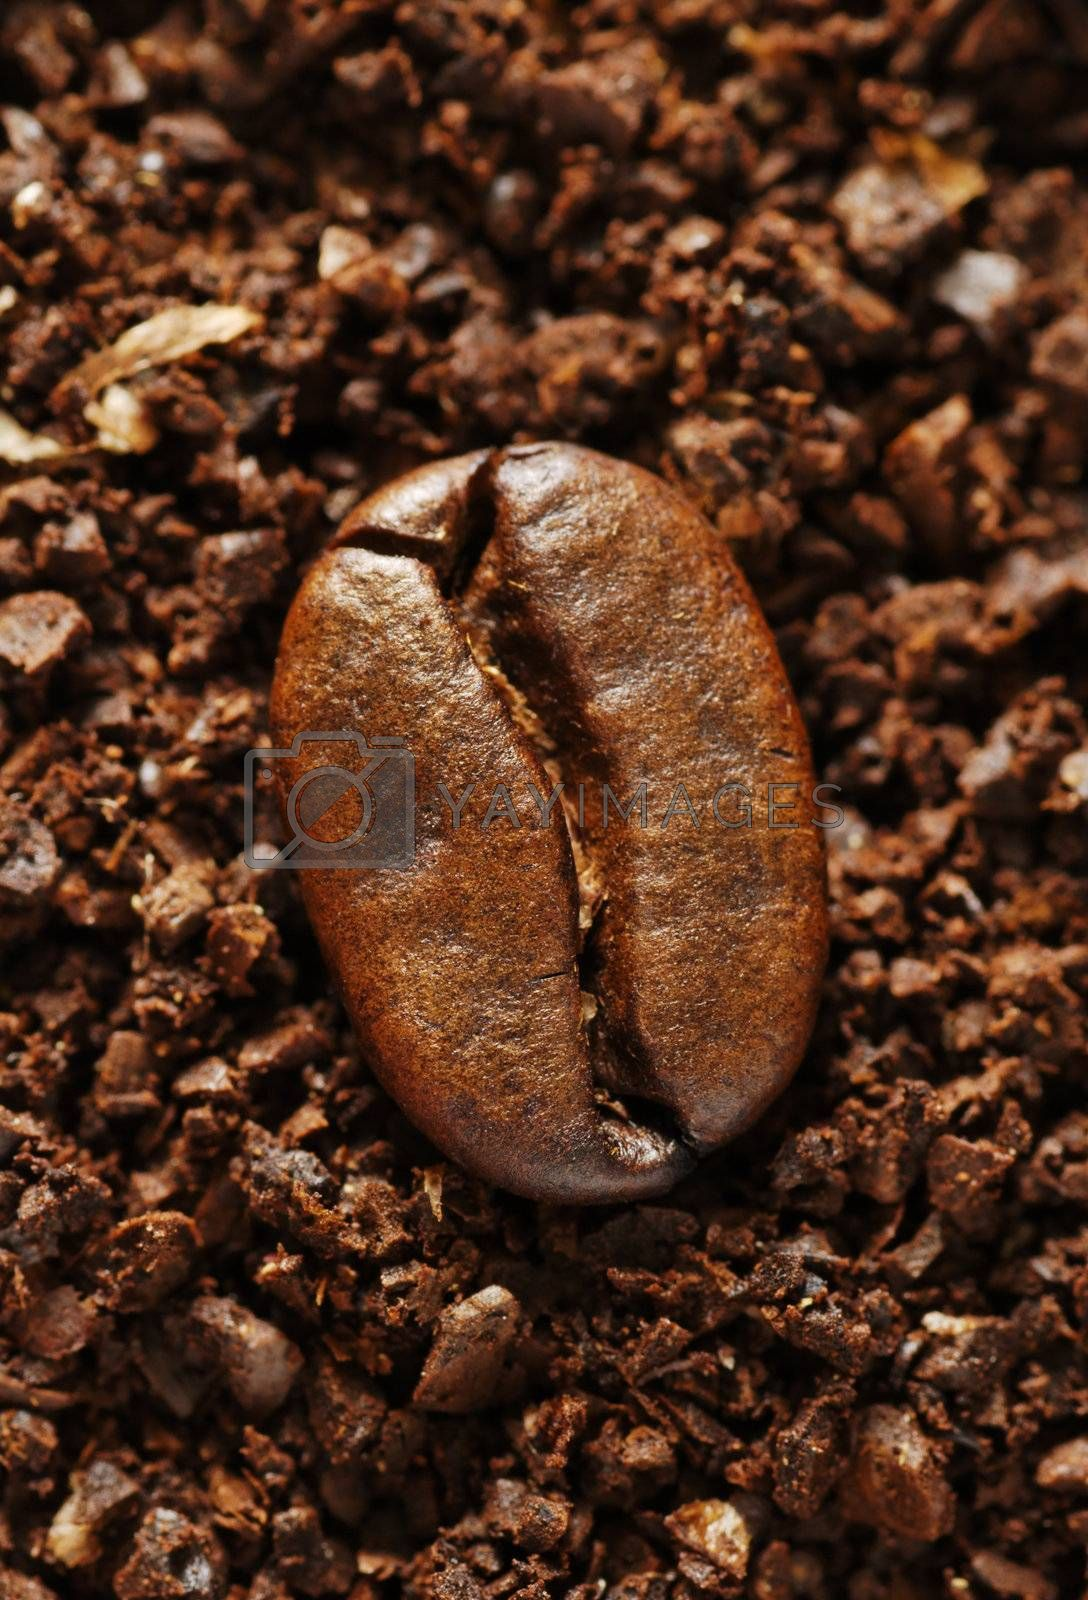 single coffee bean on a background of ground coffee